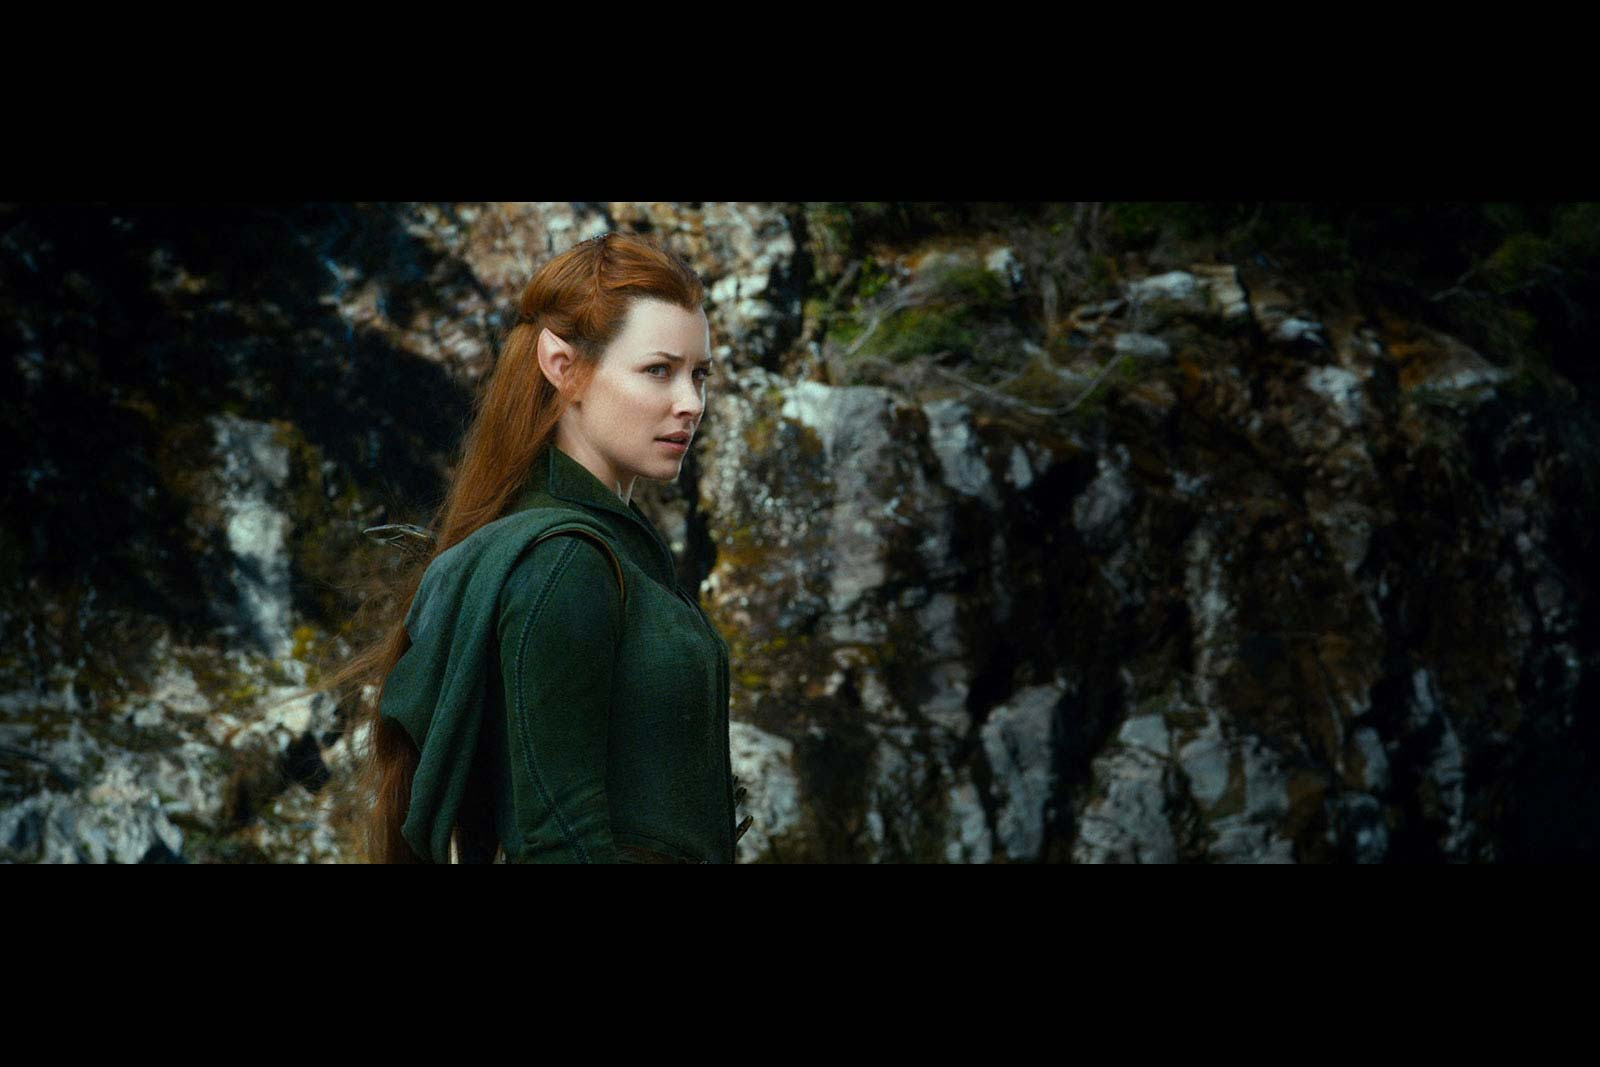 desolation of smaug wallpapers hd tauriel wallpaper evangeline lilly 1600x1067